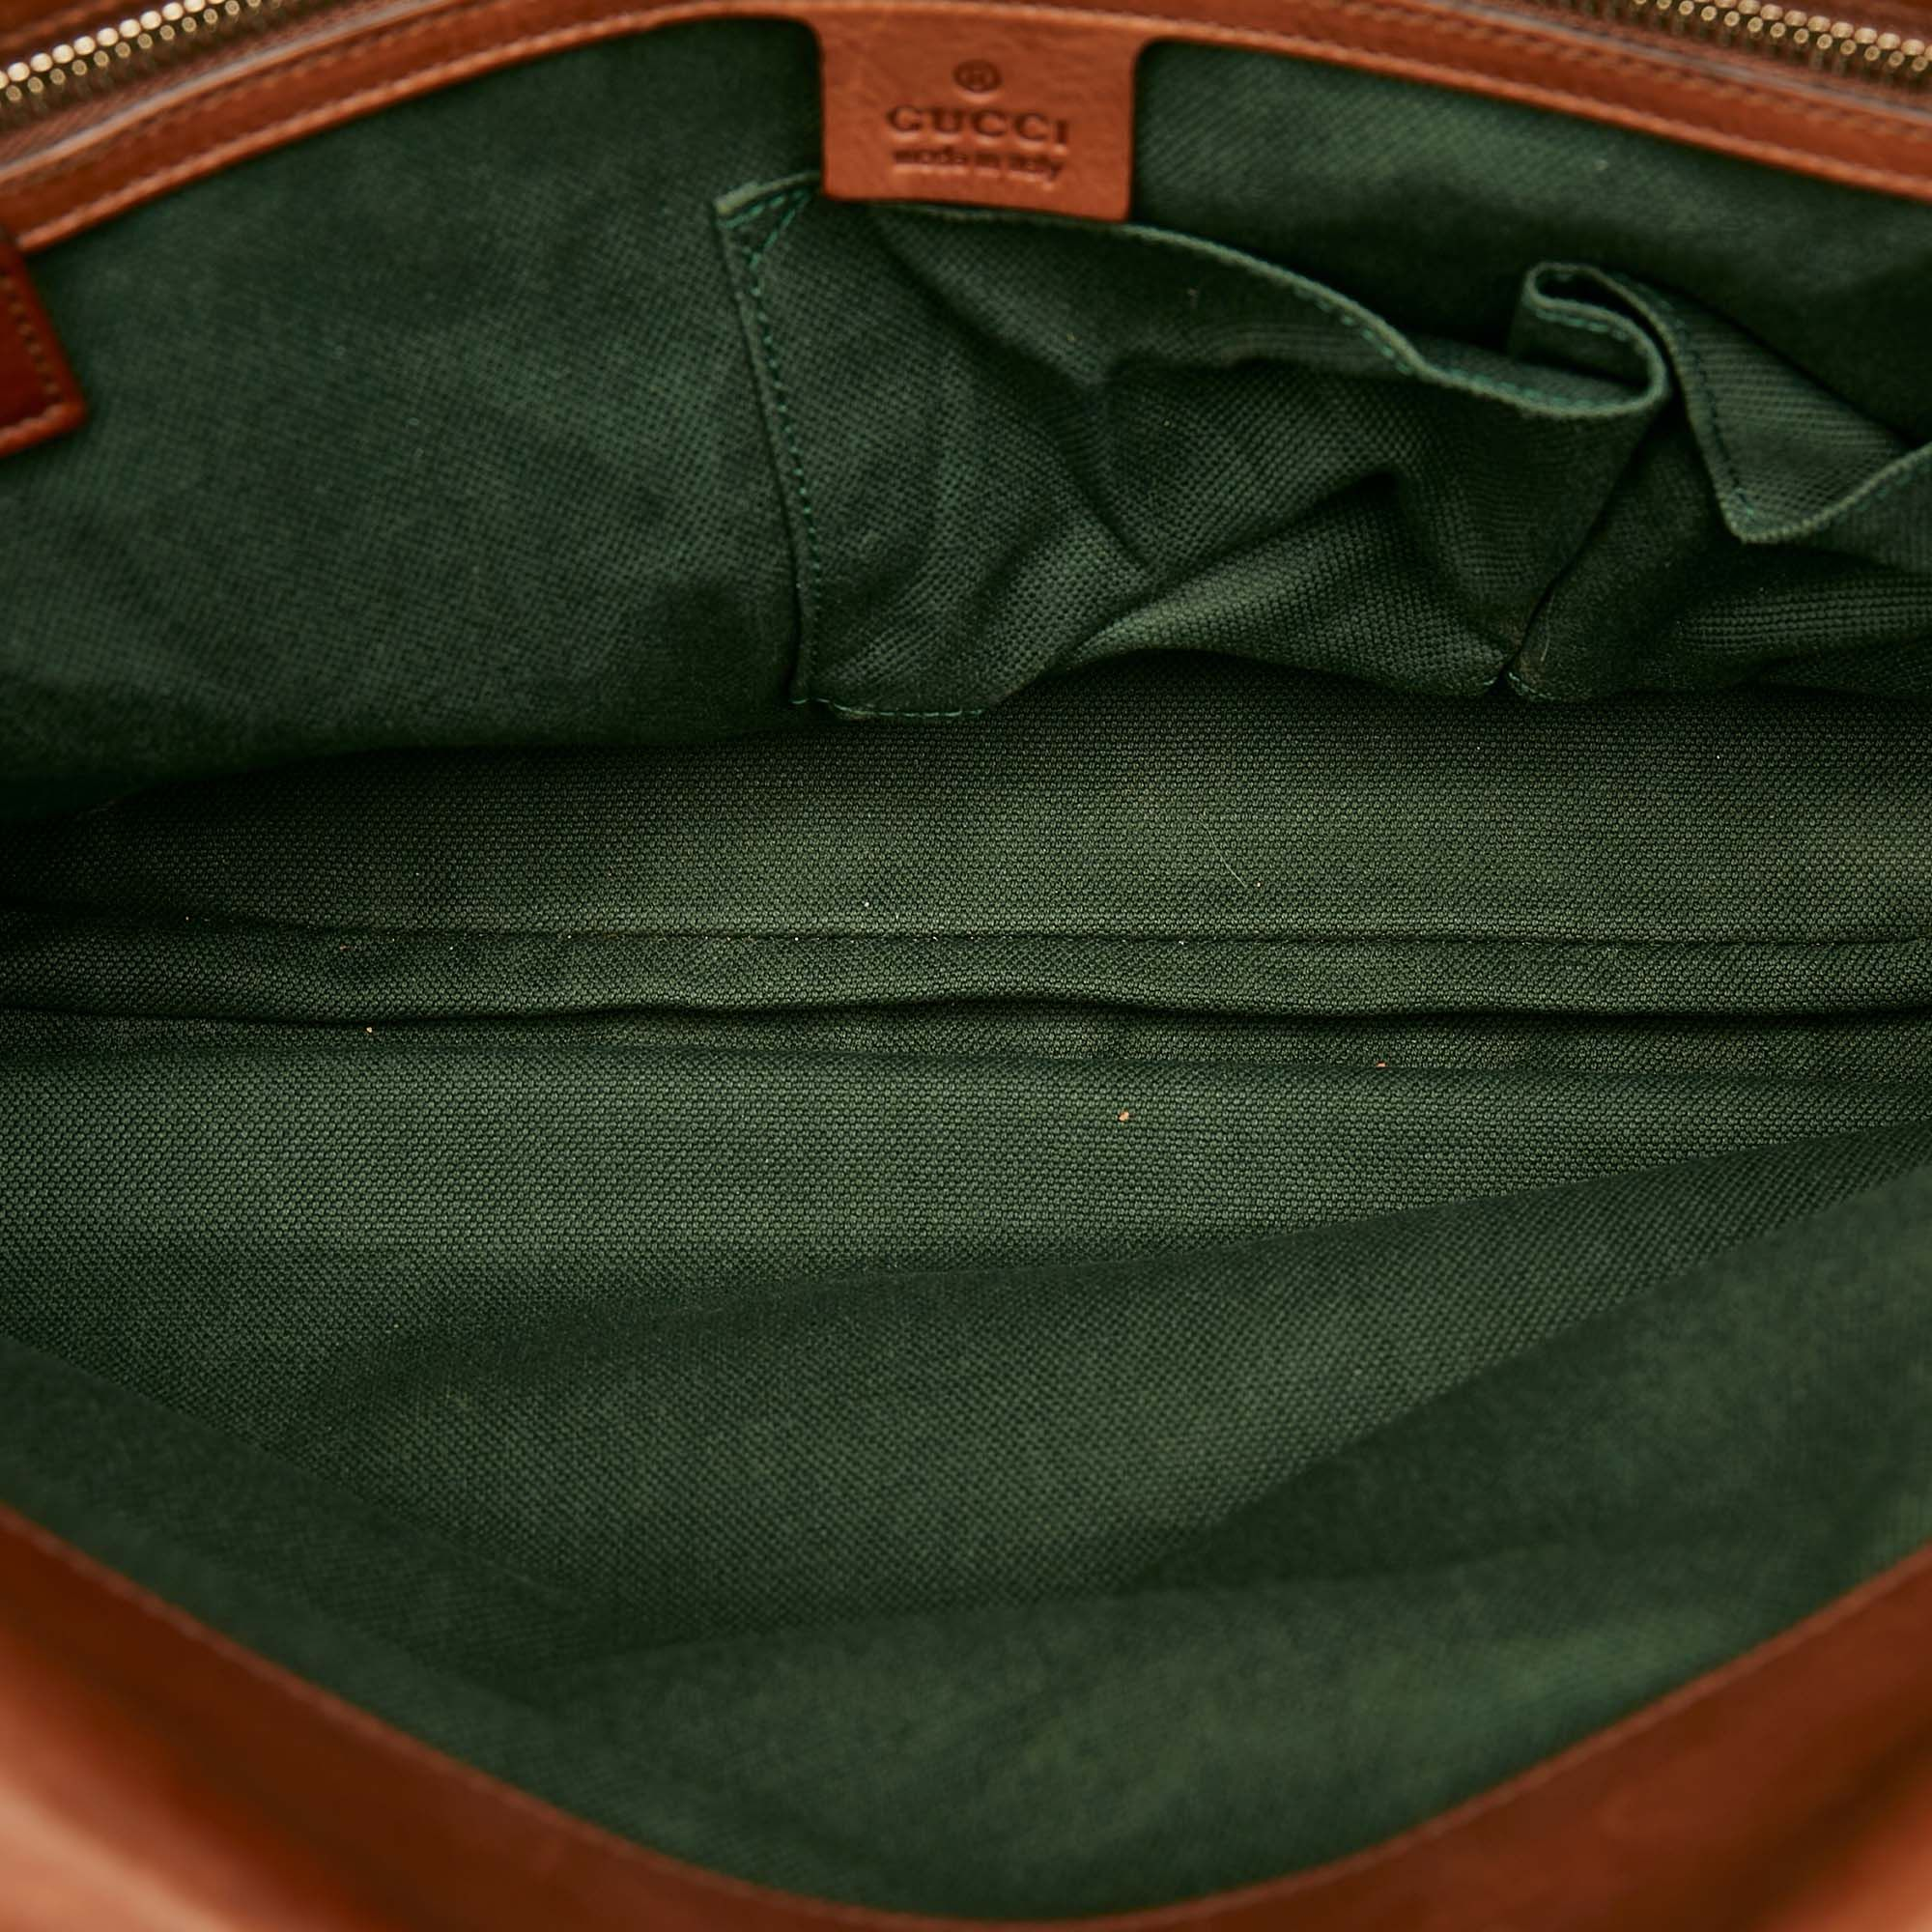 Vintage Gucci Bamboo Leather Briefcase Brown